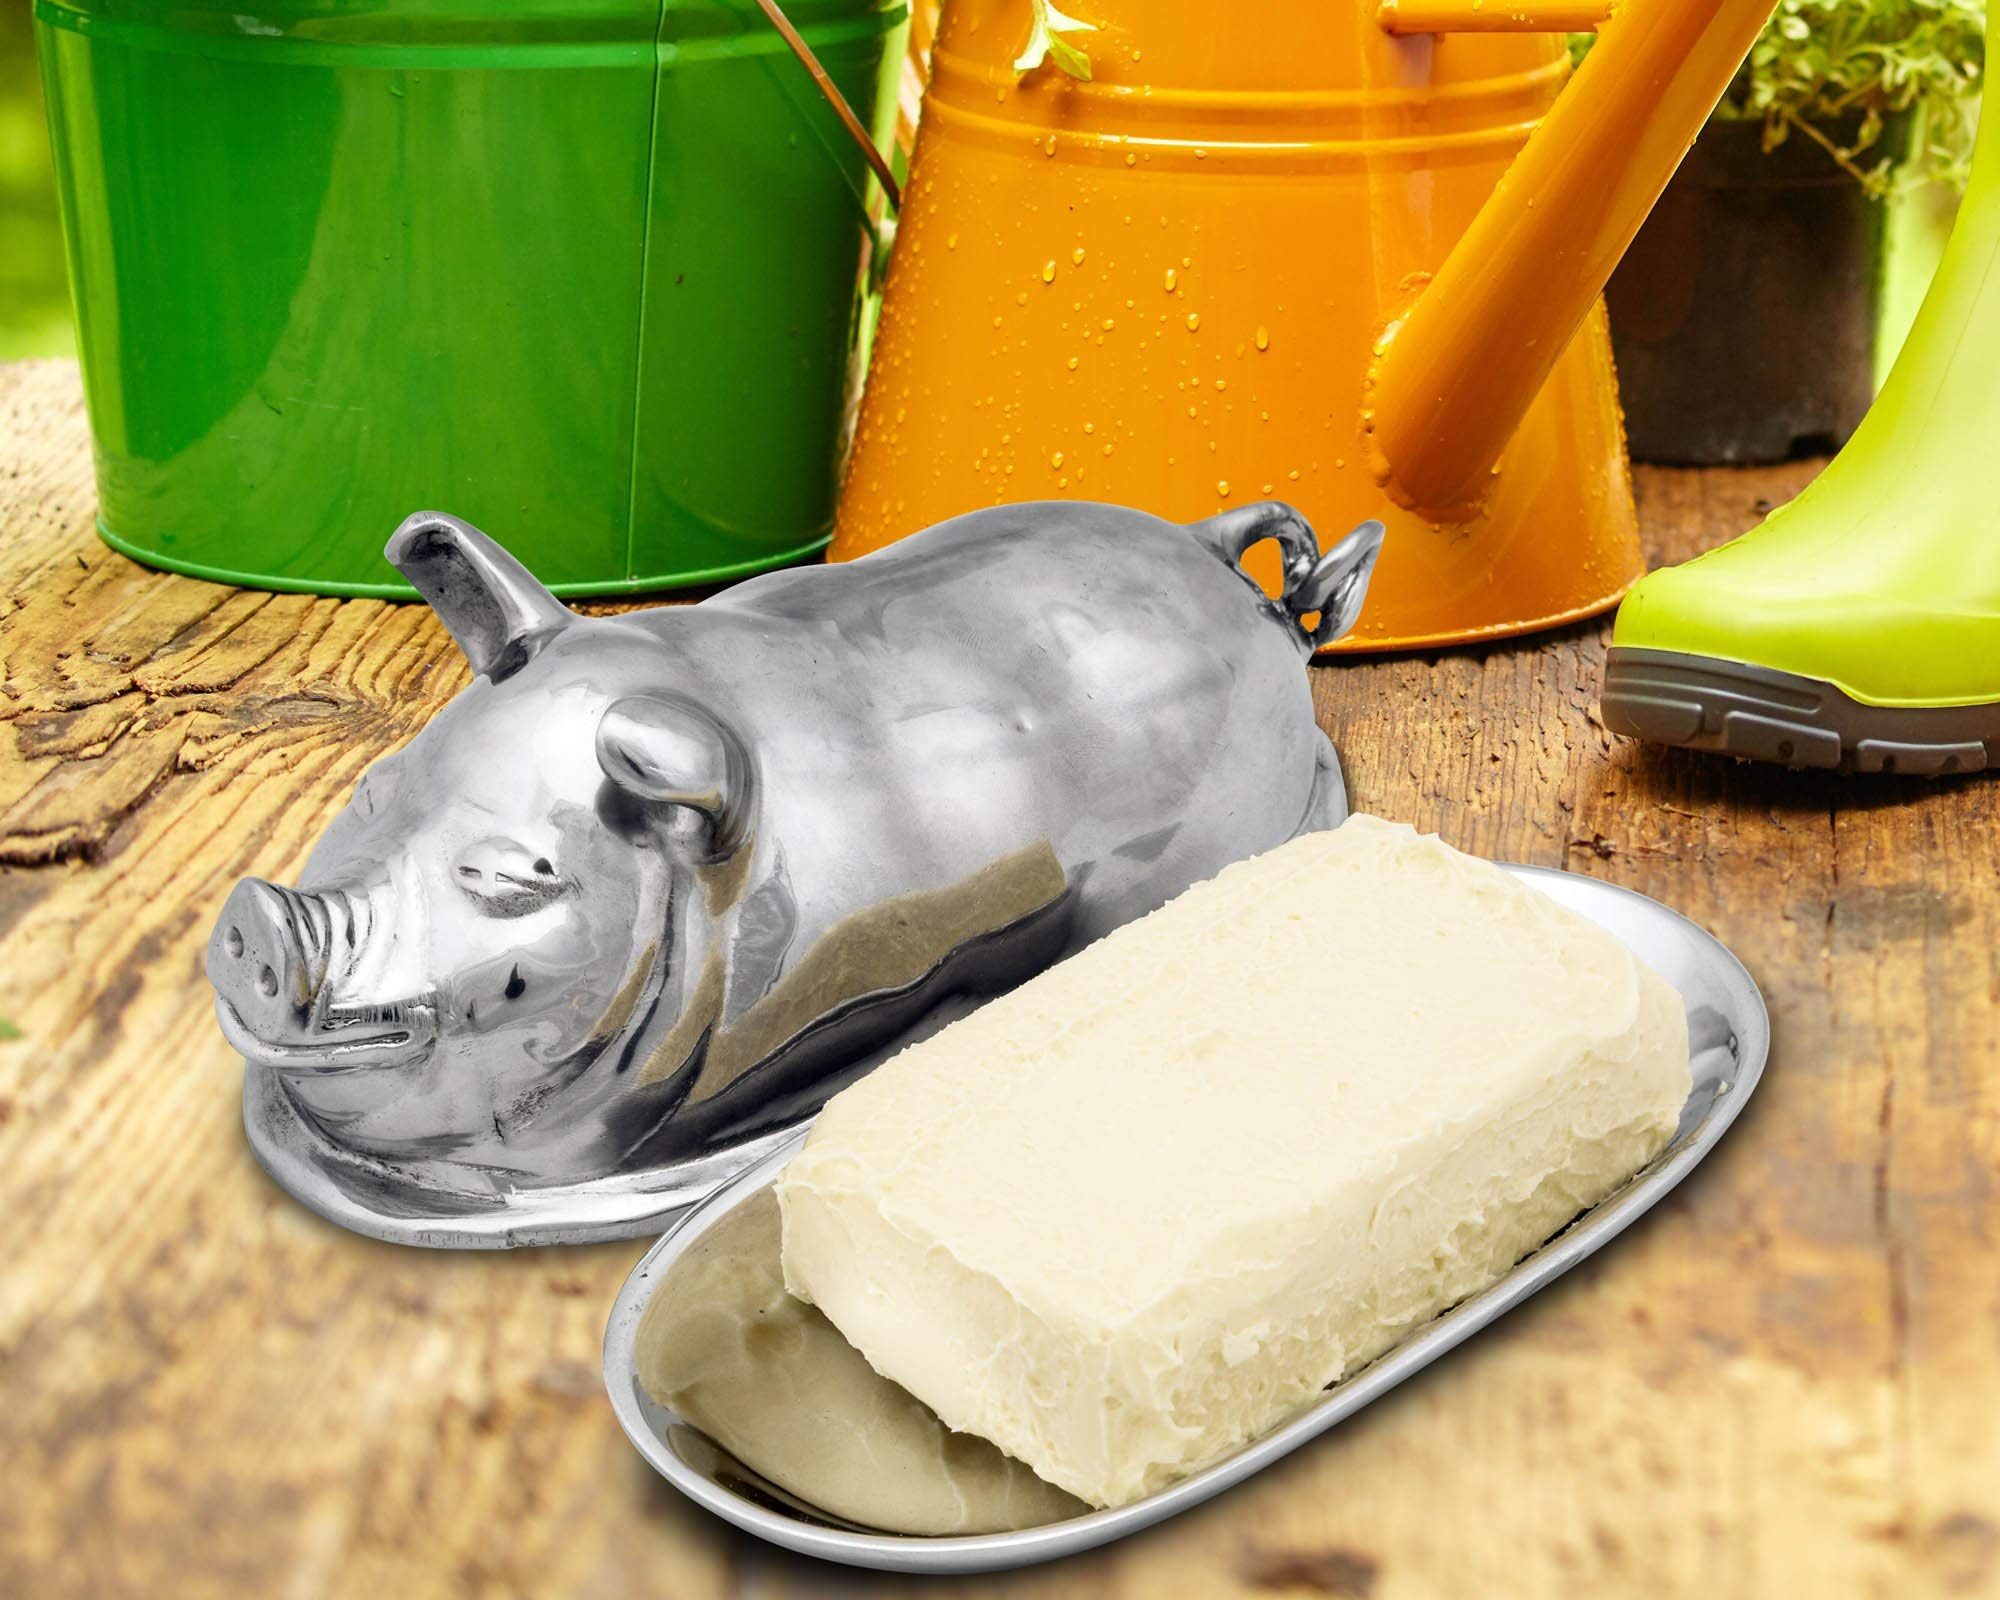 Arthur Court Happy Pig Butter Cream Cheese Dish 3.75'' Long x 7.5'' Wide x 3.5'' Tall by Arthur Court (Image #1)